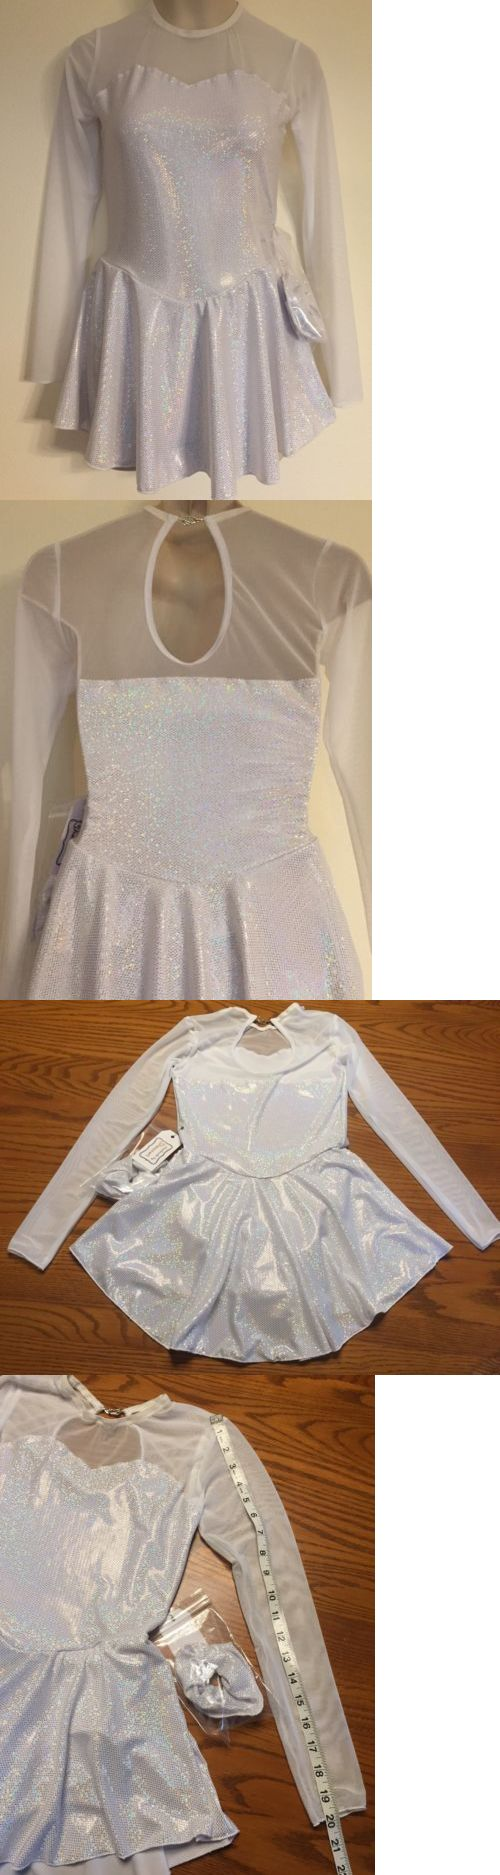 Skating Dresses-Girls 21226: Figure Skating New Competition Dress Child L 10 Ice Skate White Sparkles Nwt -> BUY IT NOW ONLY: $39.99 on eBay!